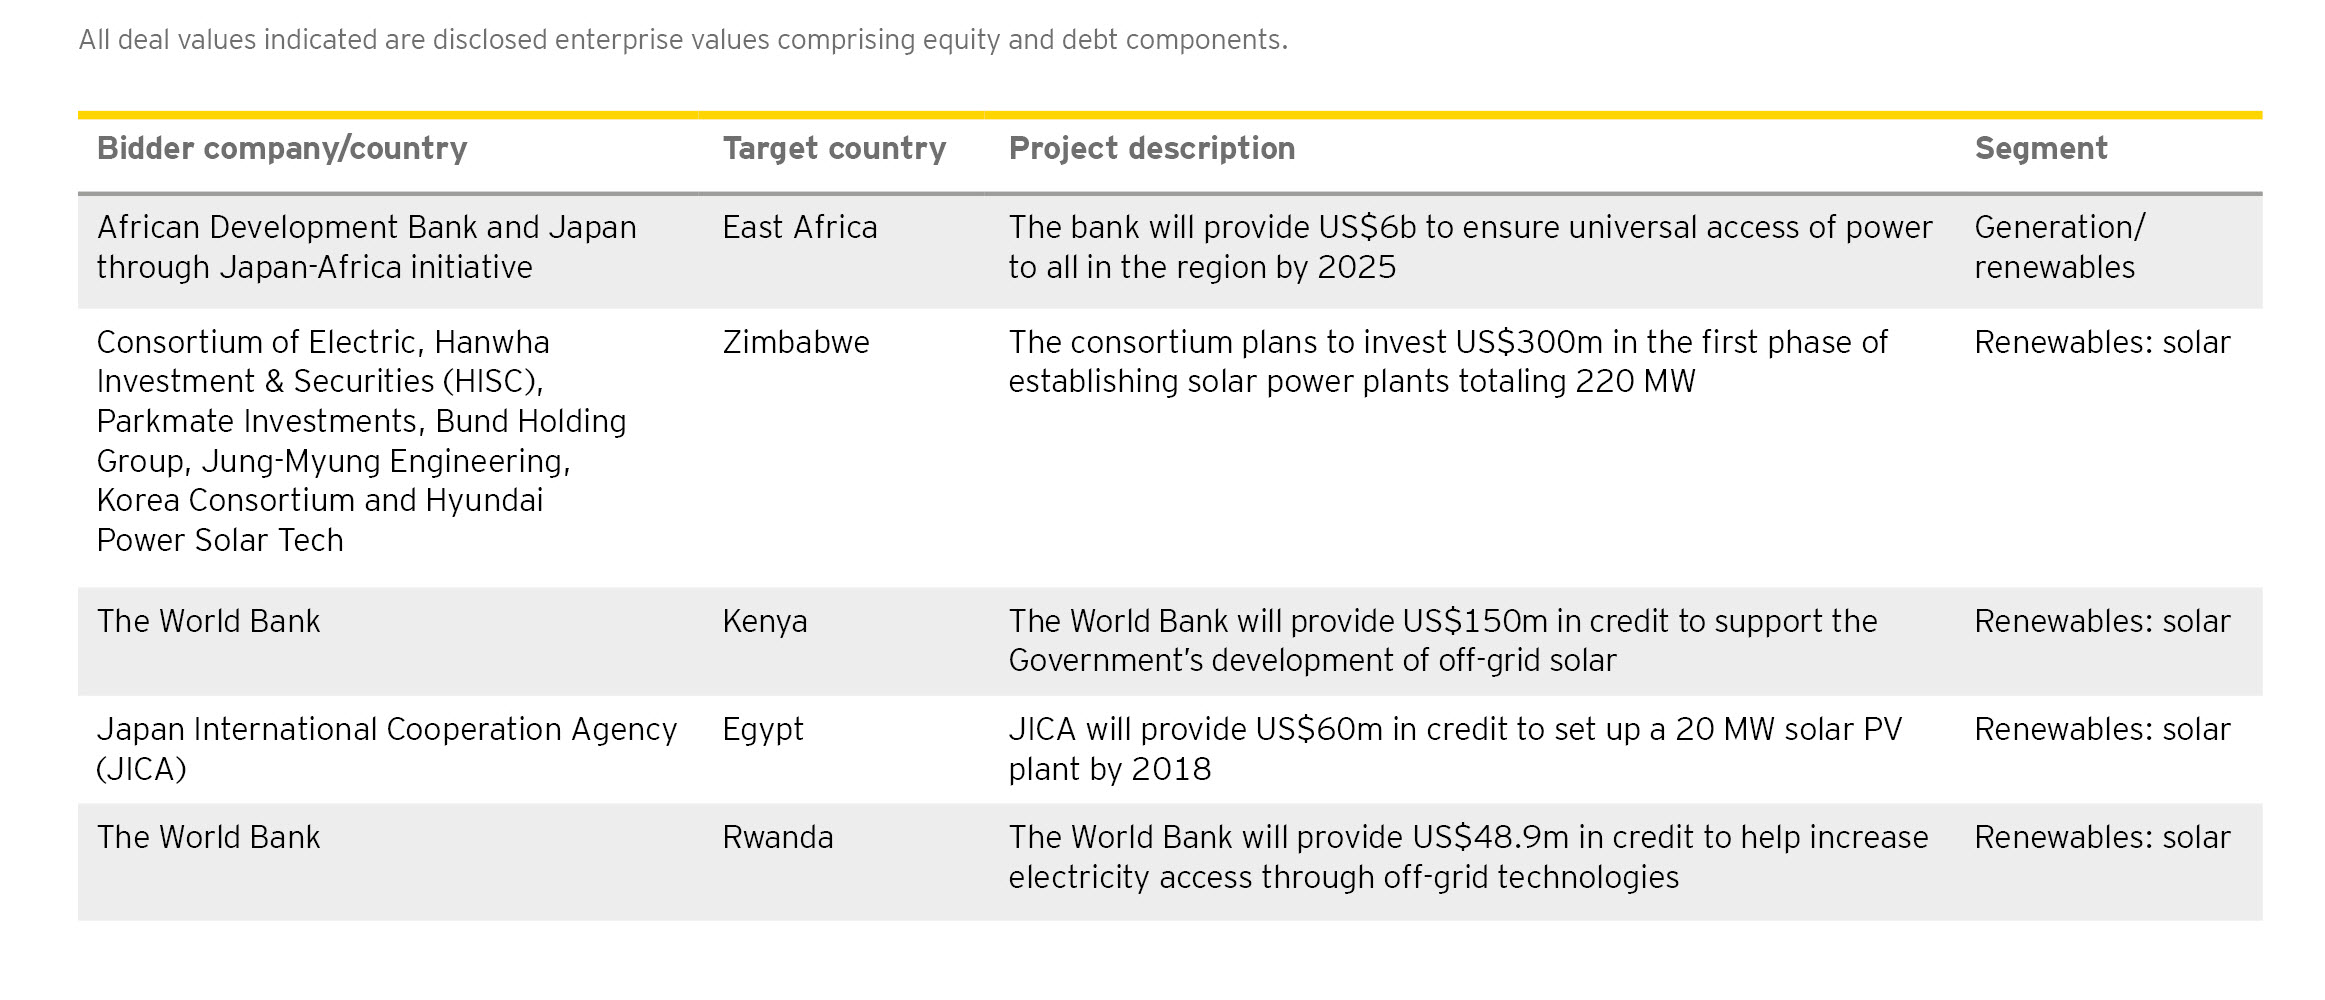 EY - Top investment deals, Q3 2017